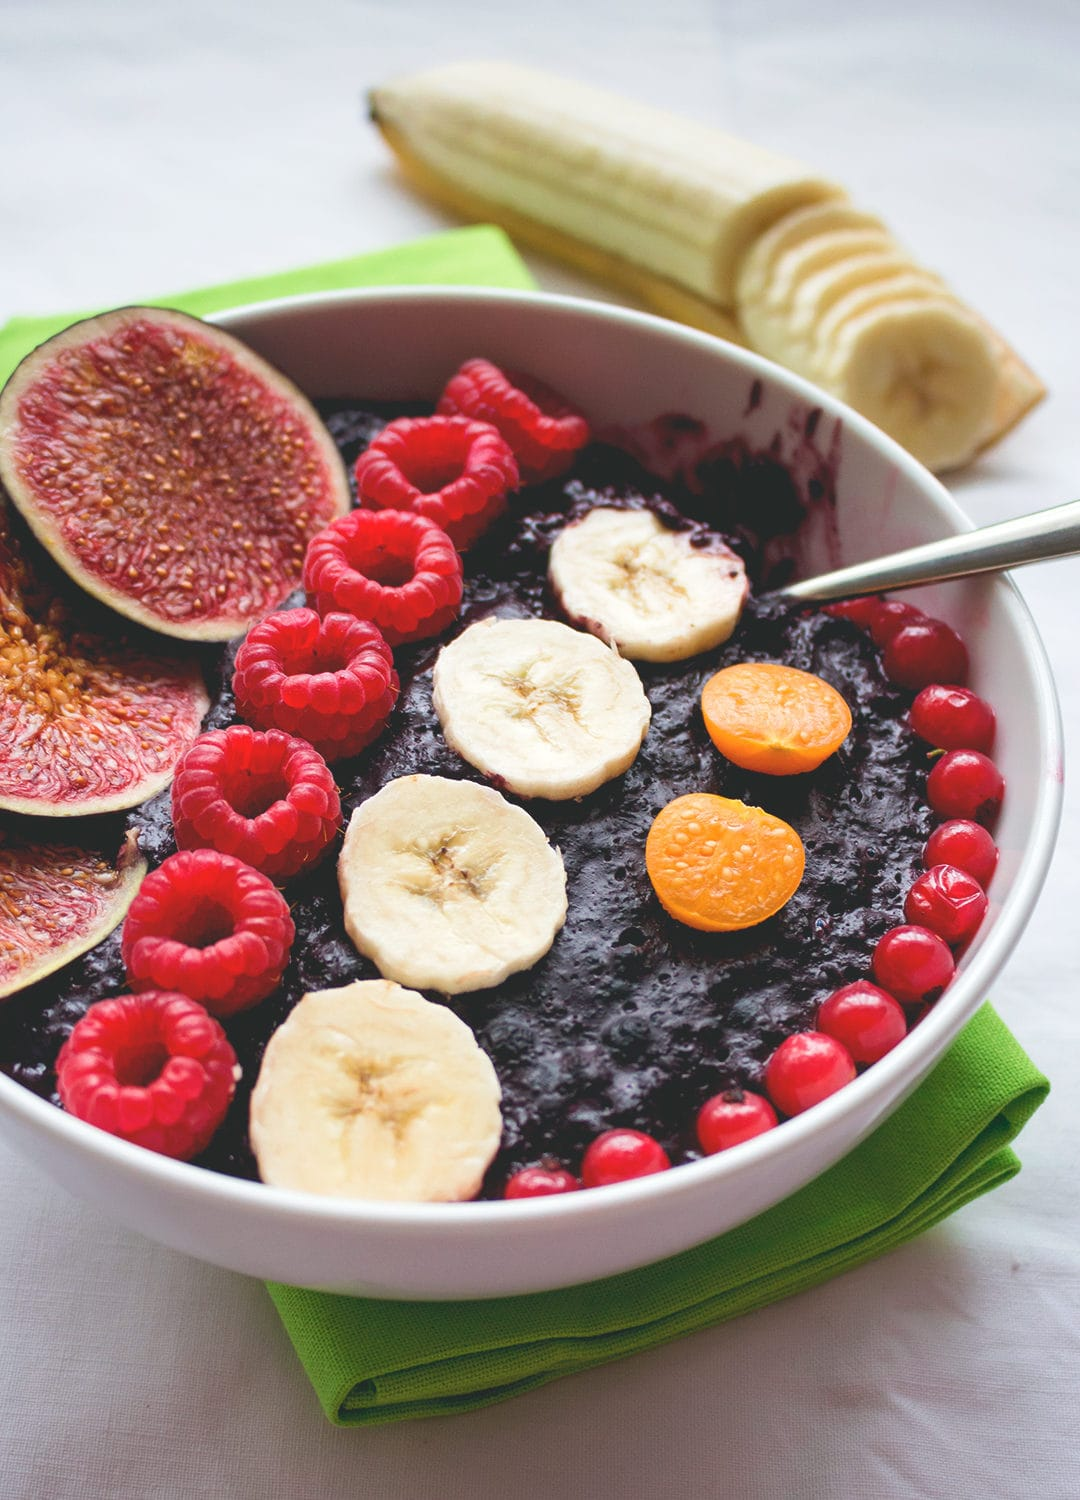 Cherry Blueberry Oatmeal with Acai - blueberries, cherries, and acai create such a delicious combination, you won't believe you aren't eating a dessert! Vegan and gluten free recipe. | thehealthfulideas.com